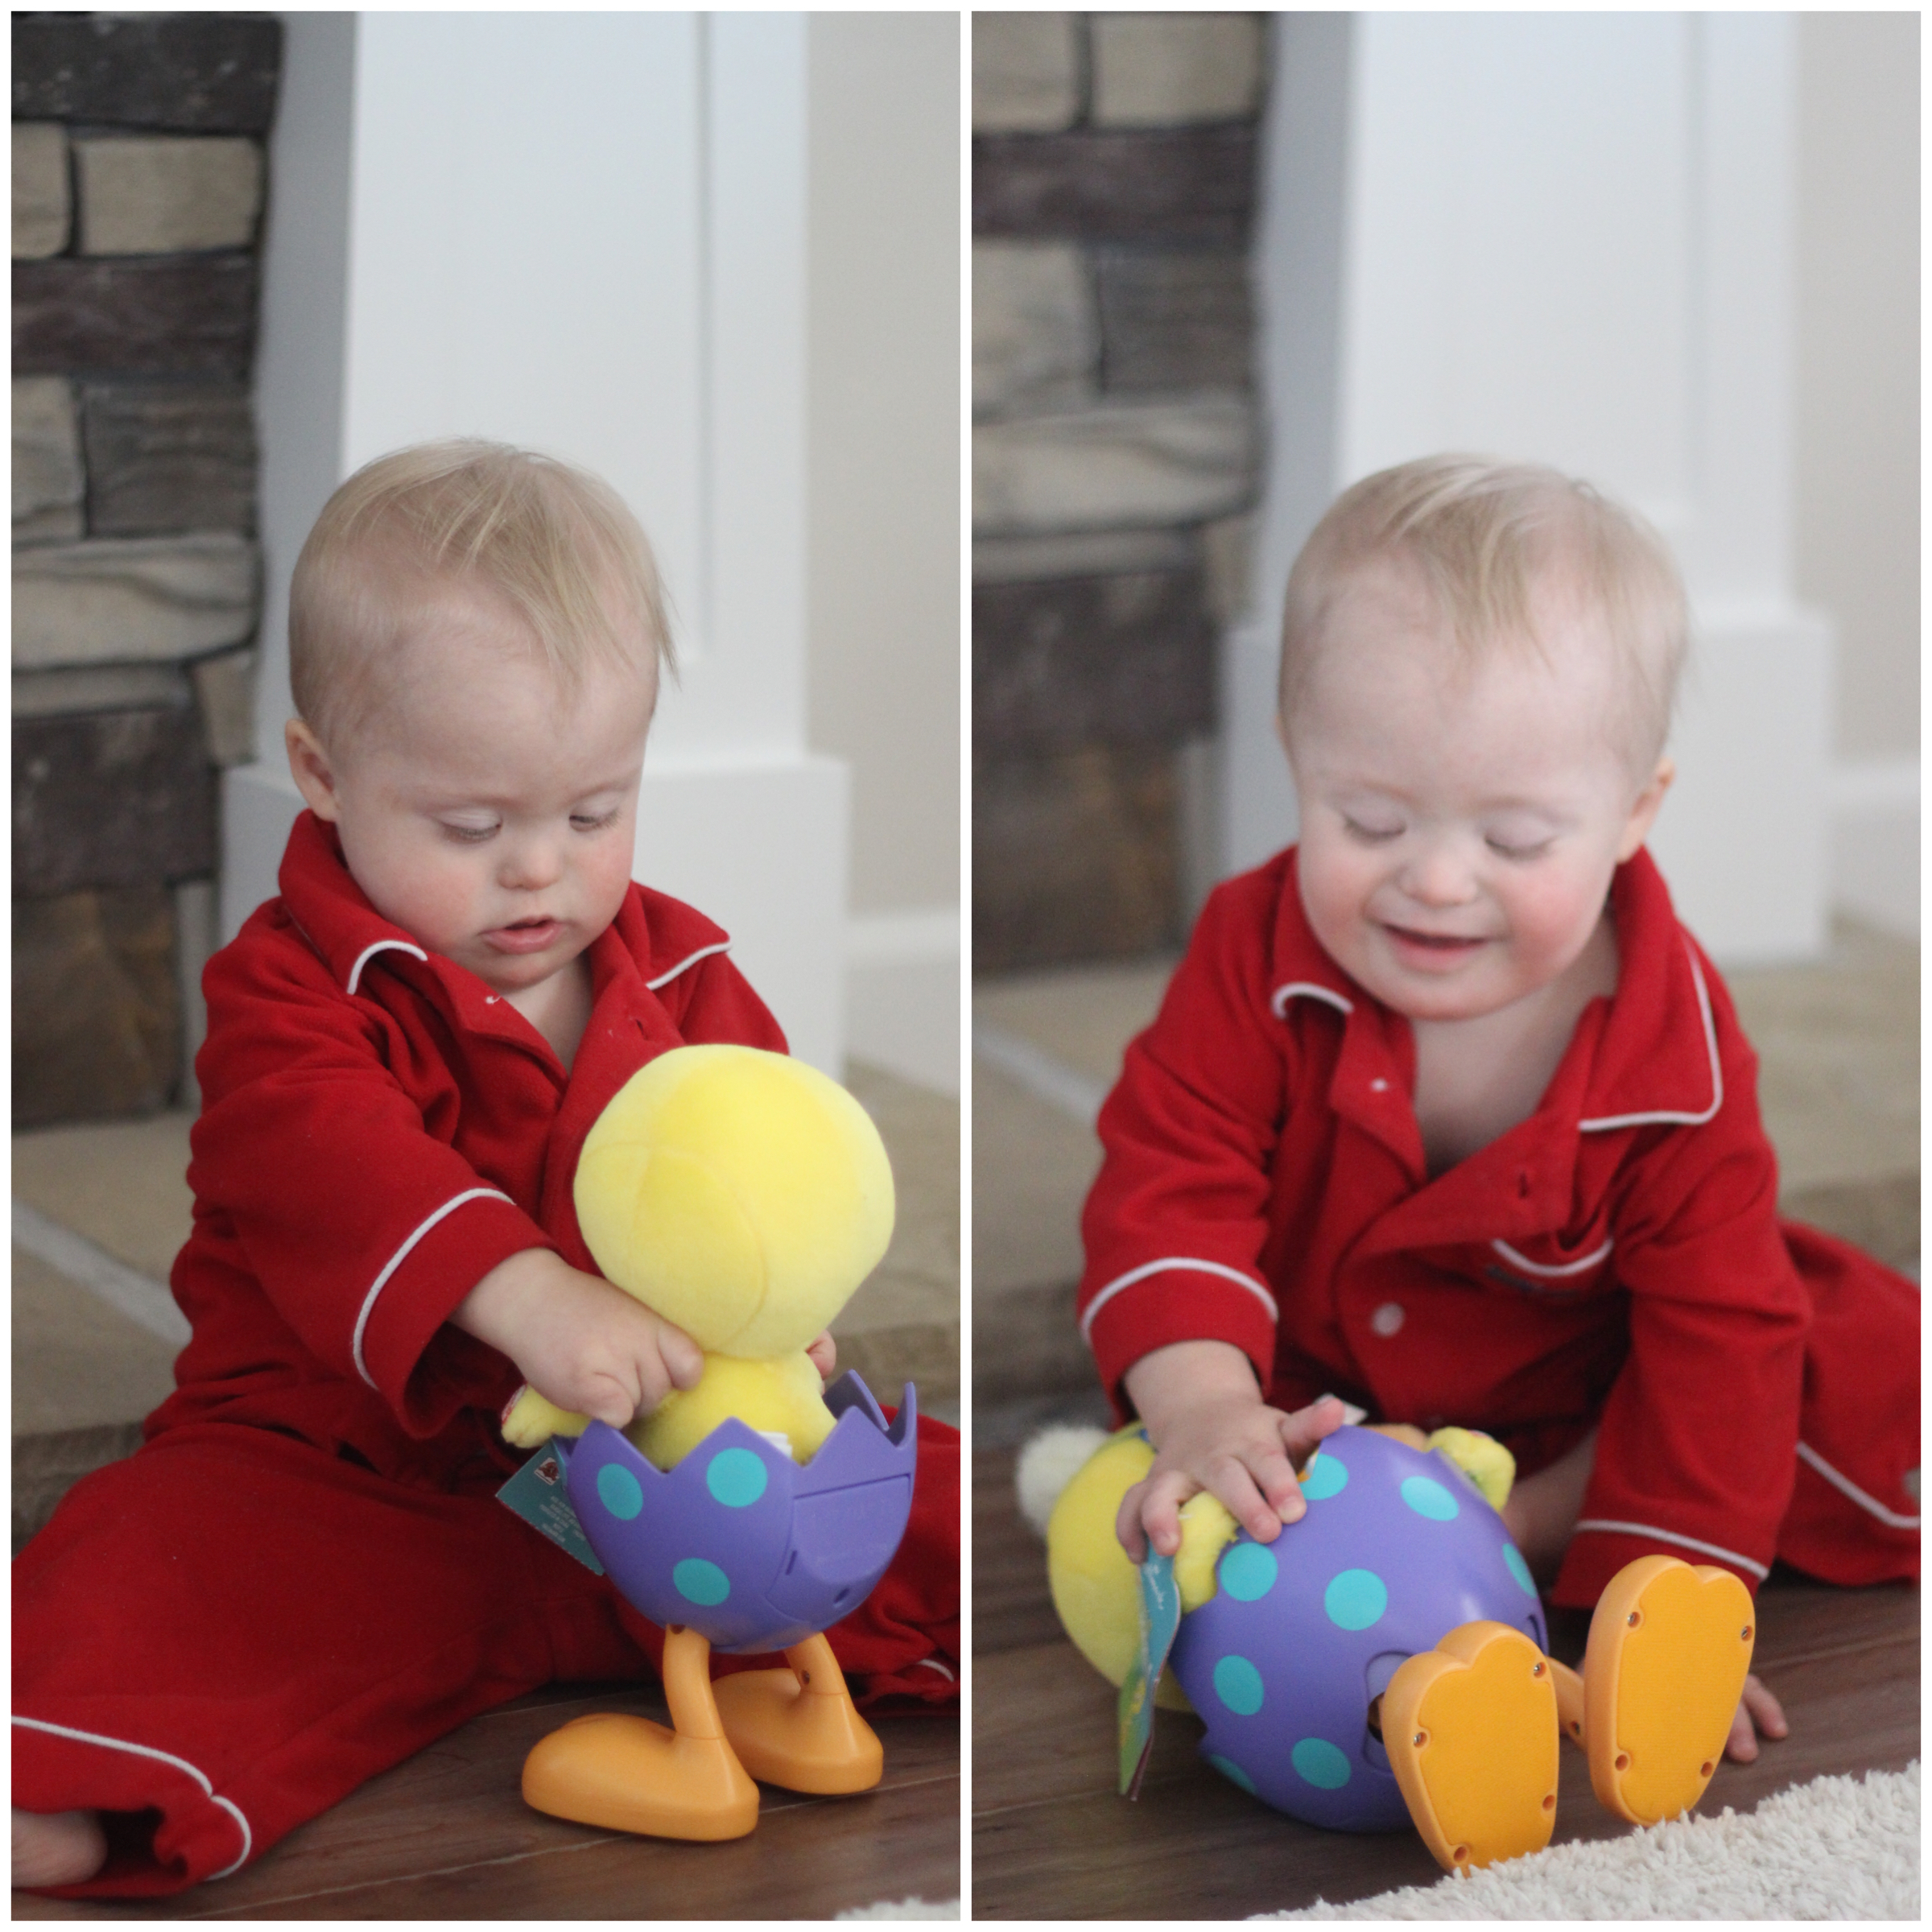 Welles' favorite toys are obnoxious ones that make a lot of noise. You're welcome my boy... A loud, Tweety Bird, music making toy. Ear plugs, please. Also, we wear Christmas PJ's for all holidays... New tradition ;)